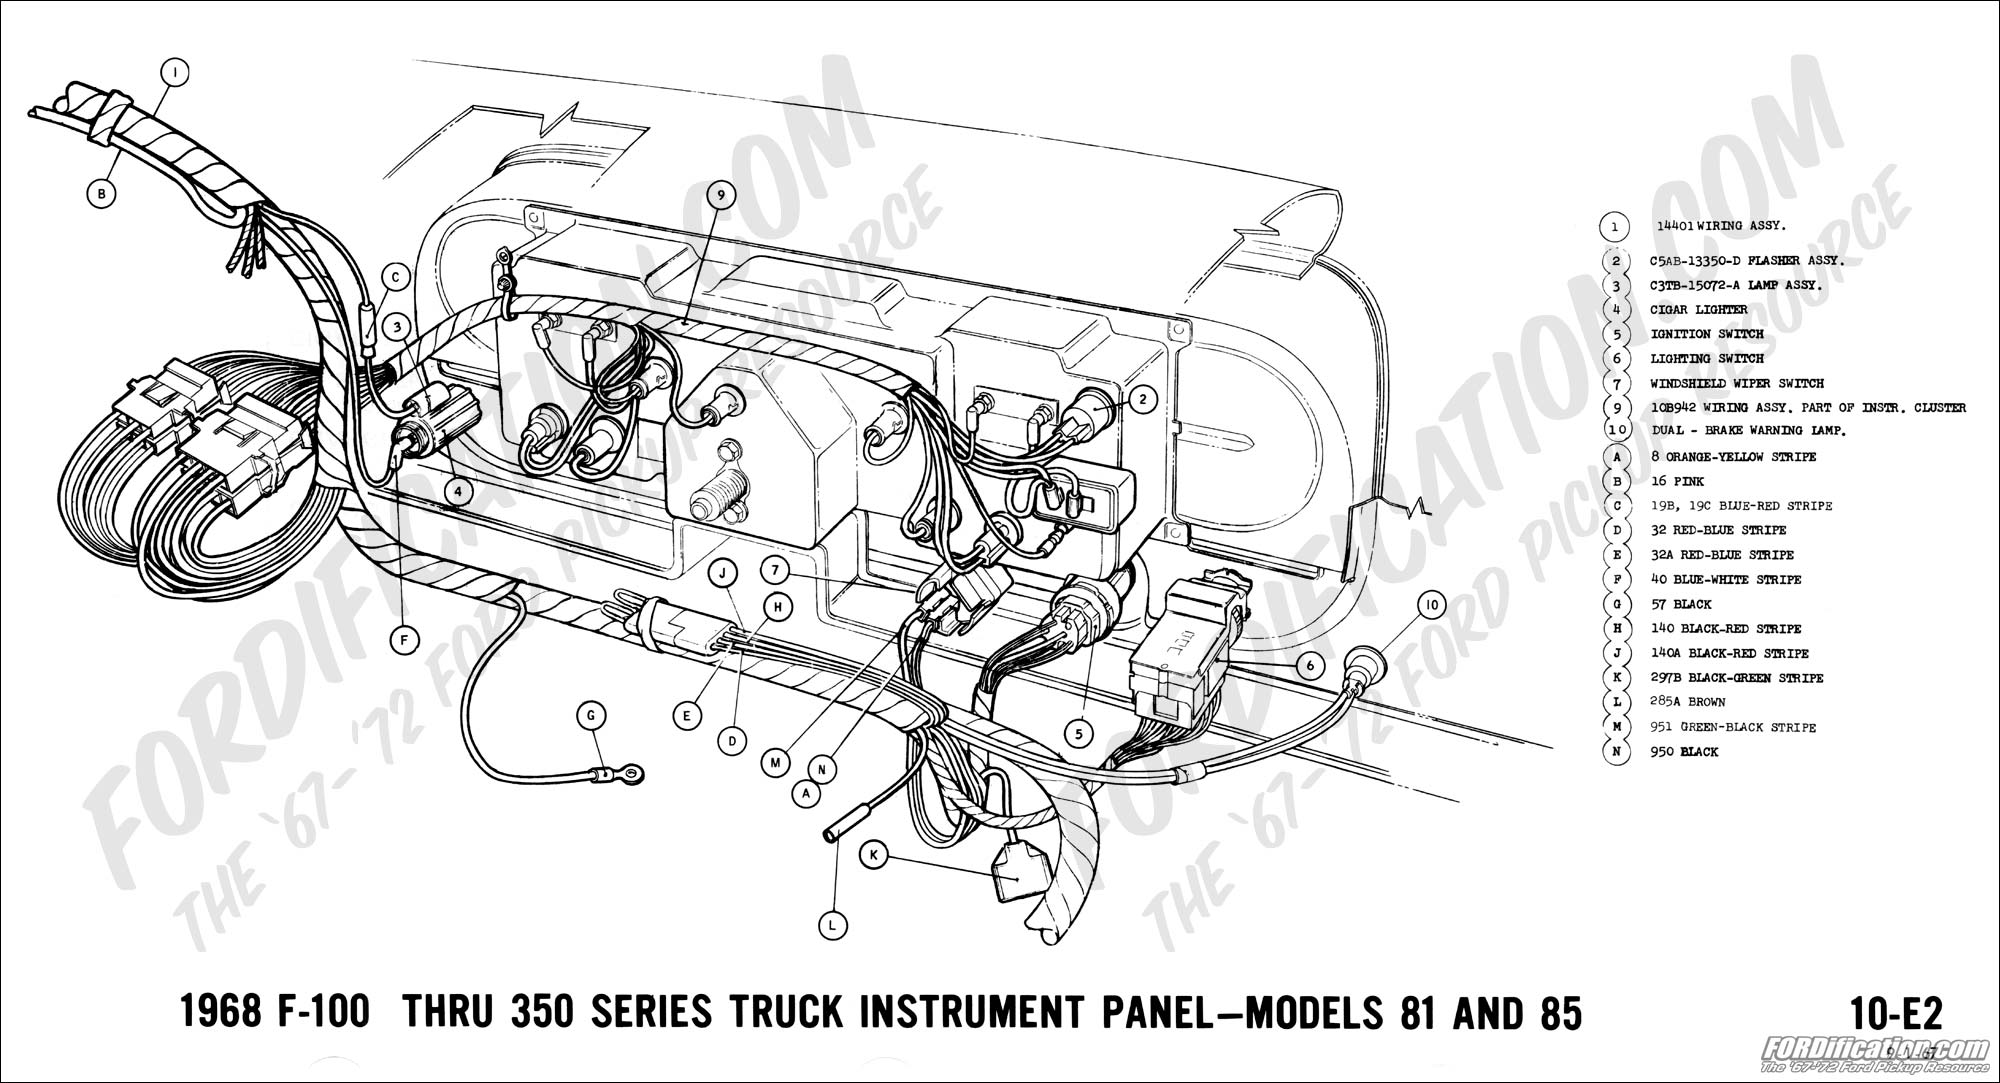 6i0xt Ford 2005 Ford Escape V6 2005 Ford Eacape moreover Diagram view as well Diagram view also 2006 Dodge Ram Cummins Wiring Diagram besides Faq Tb 11 0022 24 Volt Vehicles. on ford wiring harness diagrams